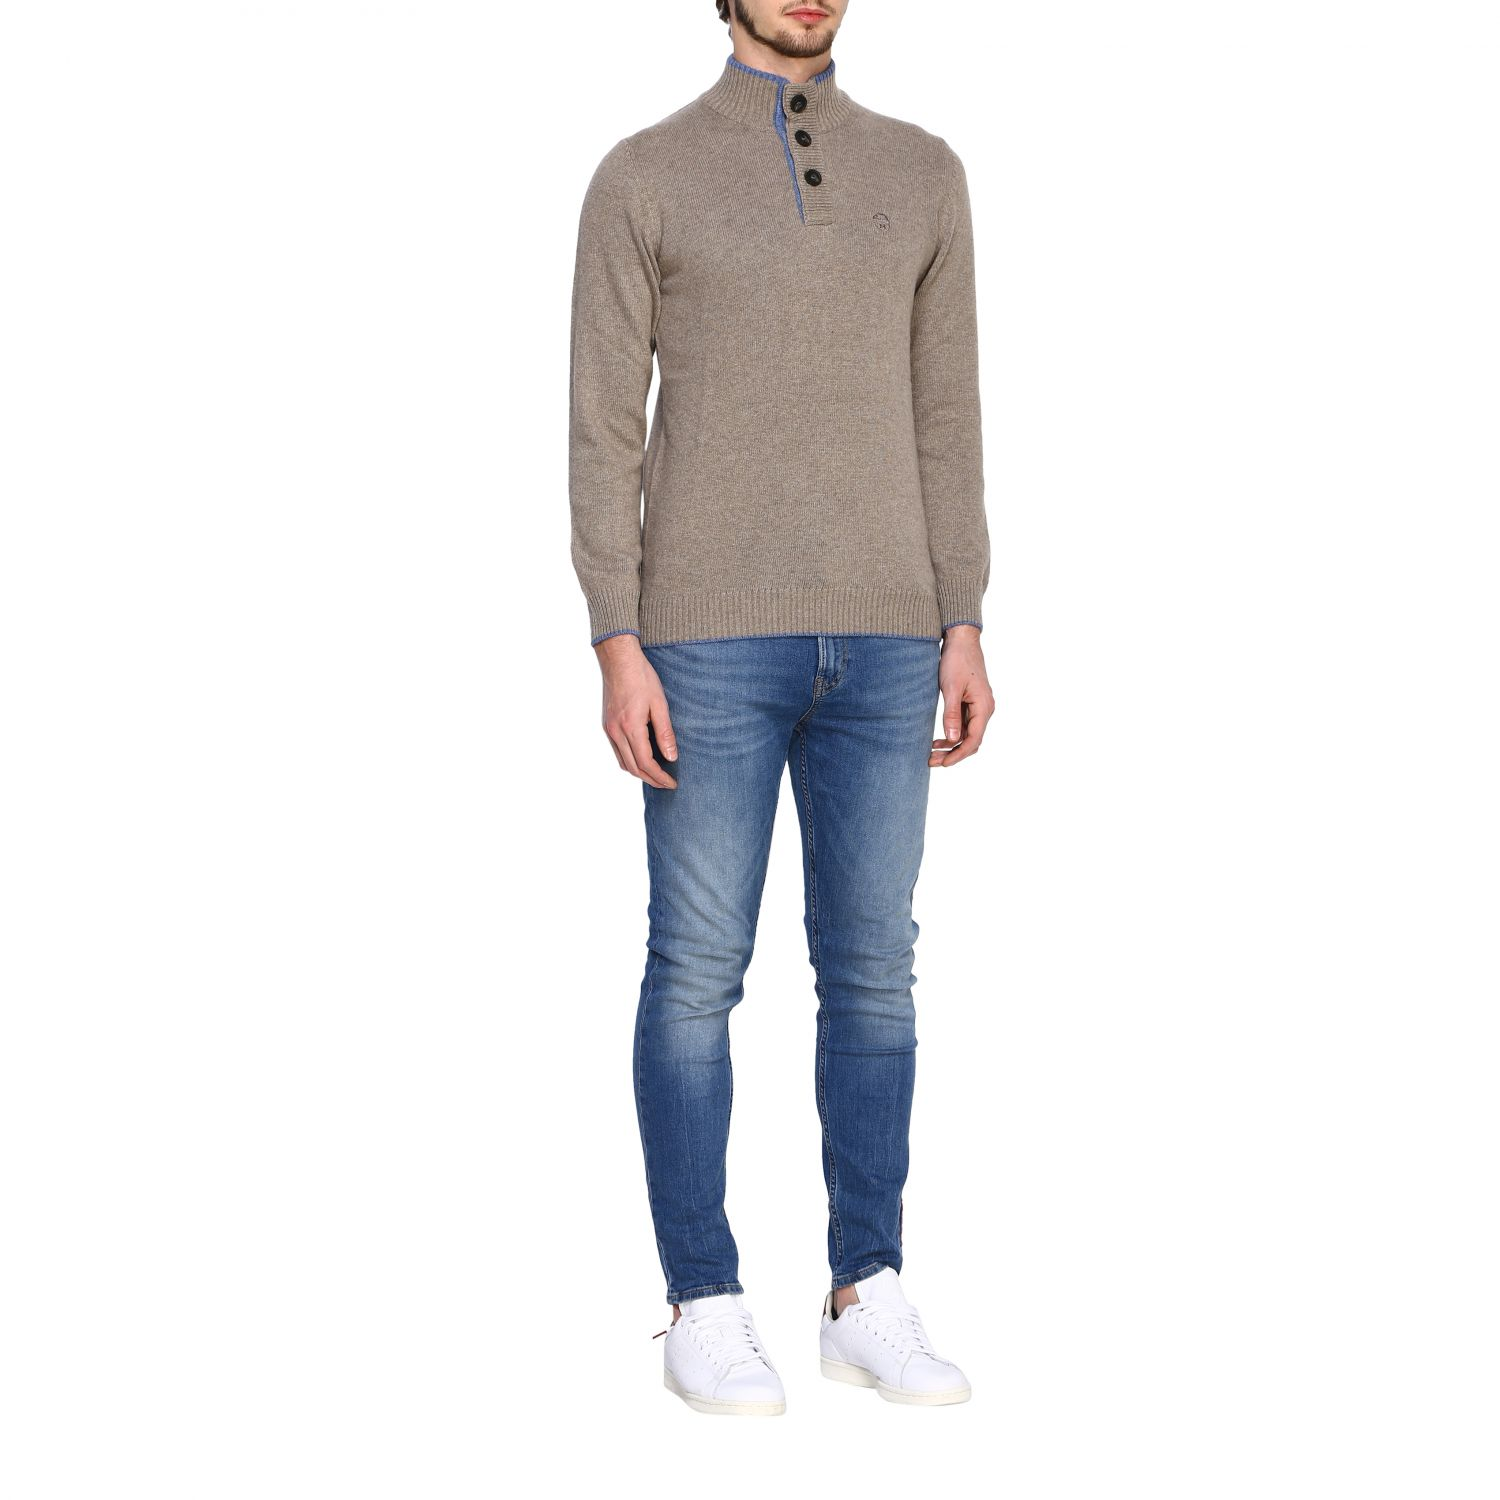 Pull homme North Sails beige 2